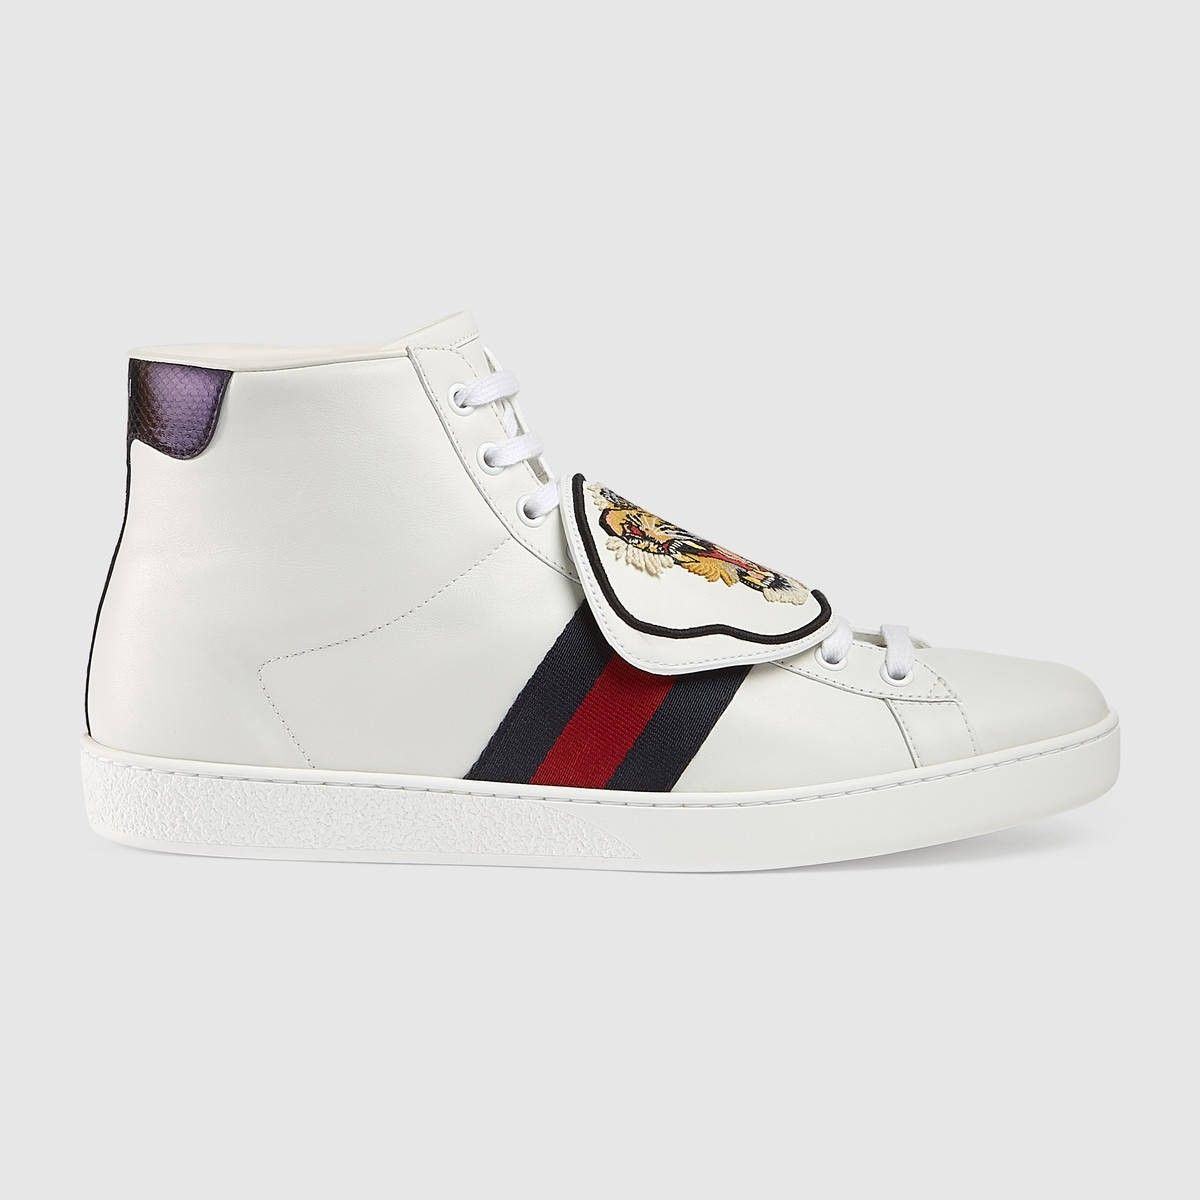 GUCCI Ace high-top sneaker with removable patches - white leather. #gucci #